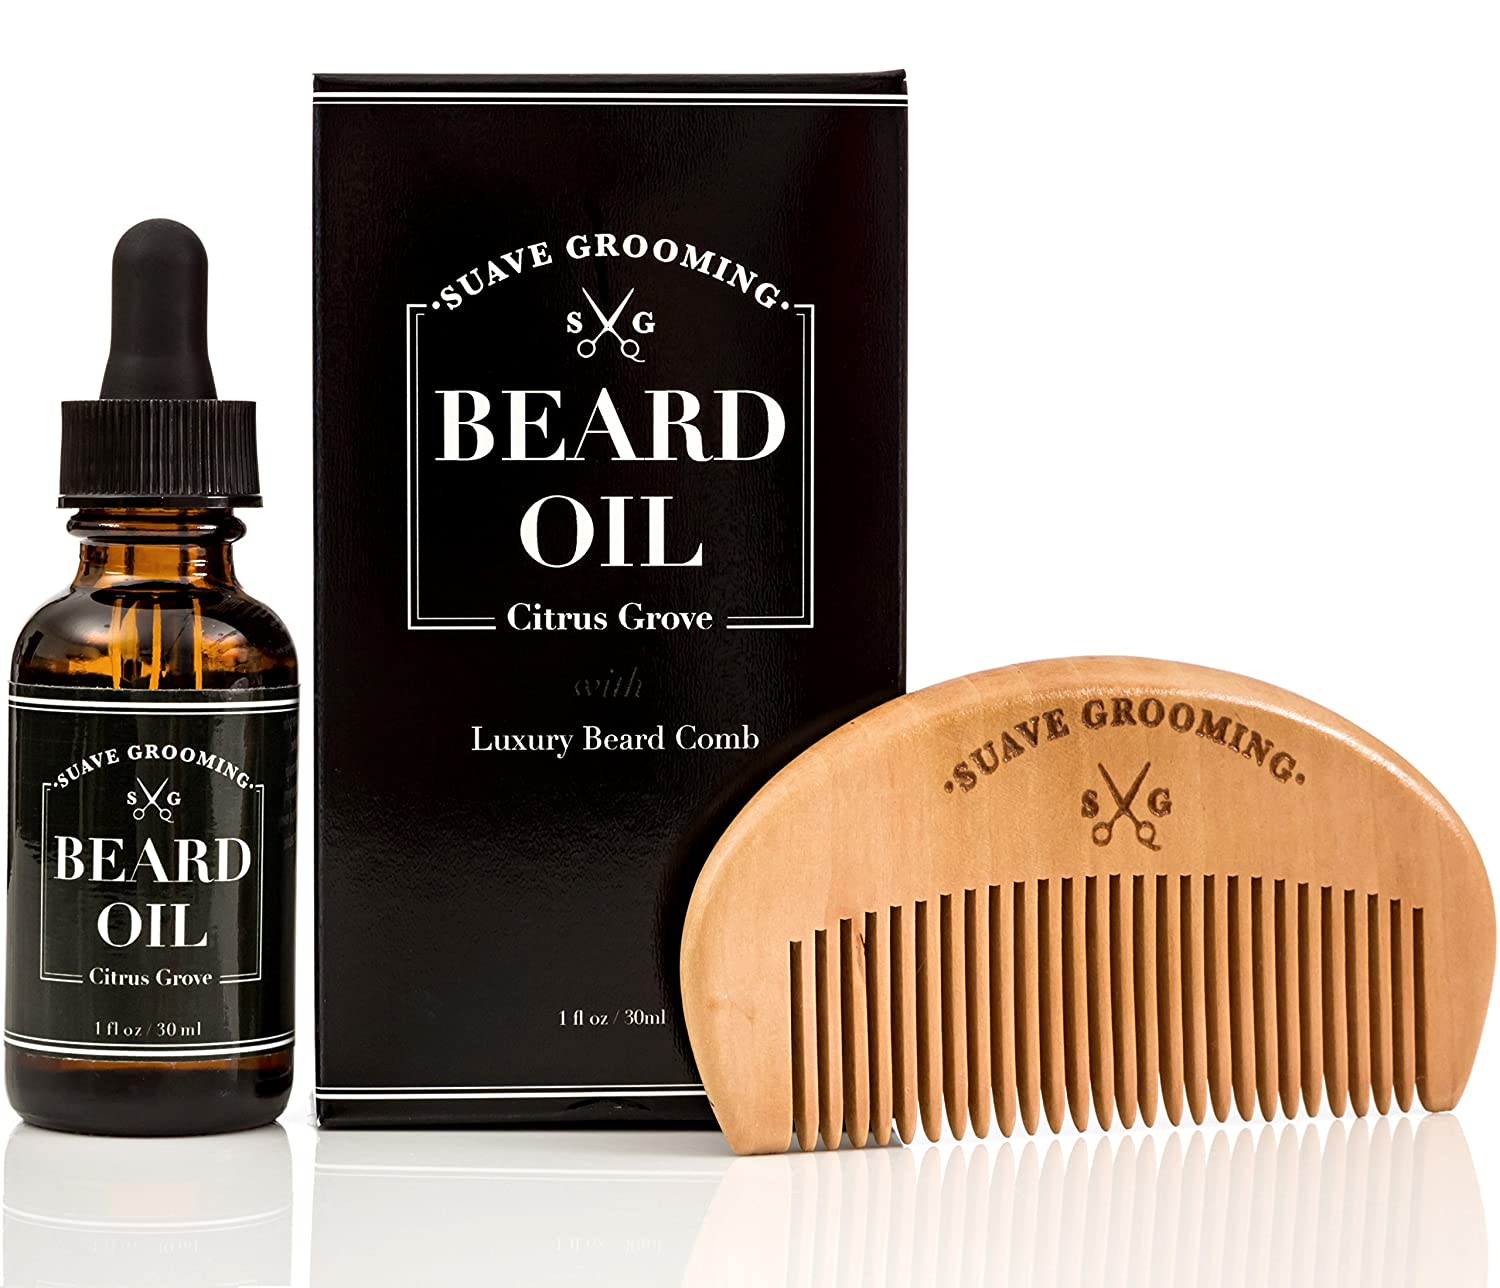 Best Beard Grooming Kit? Putting ther Your Beard Care Kit